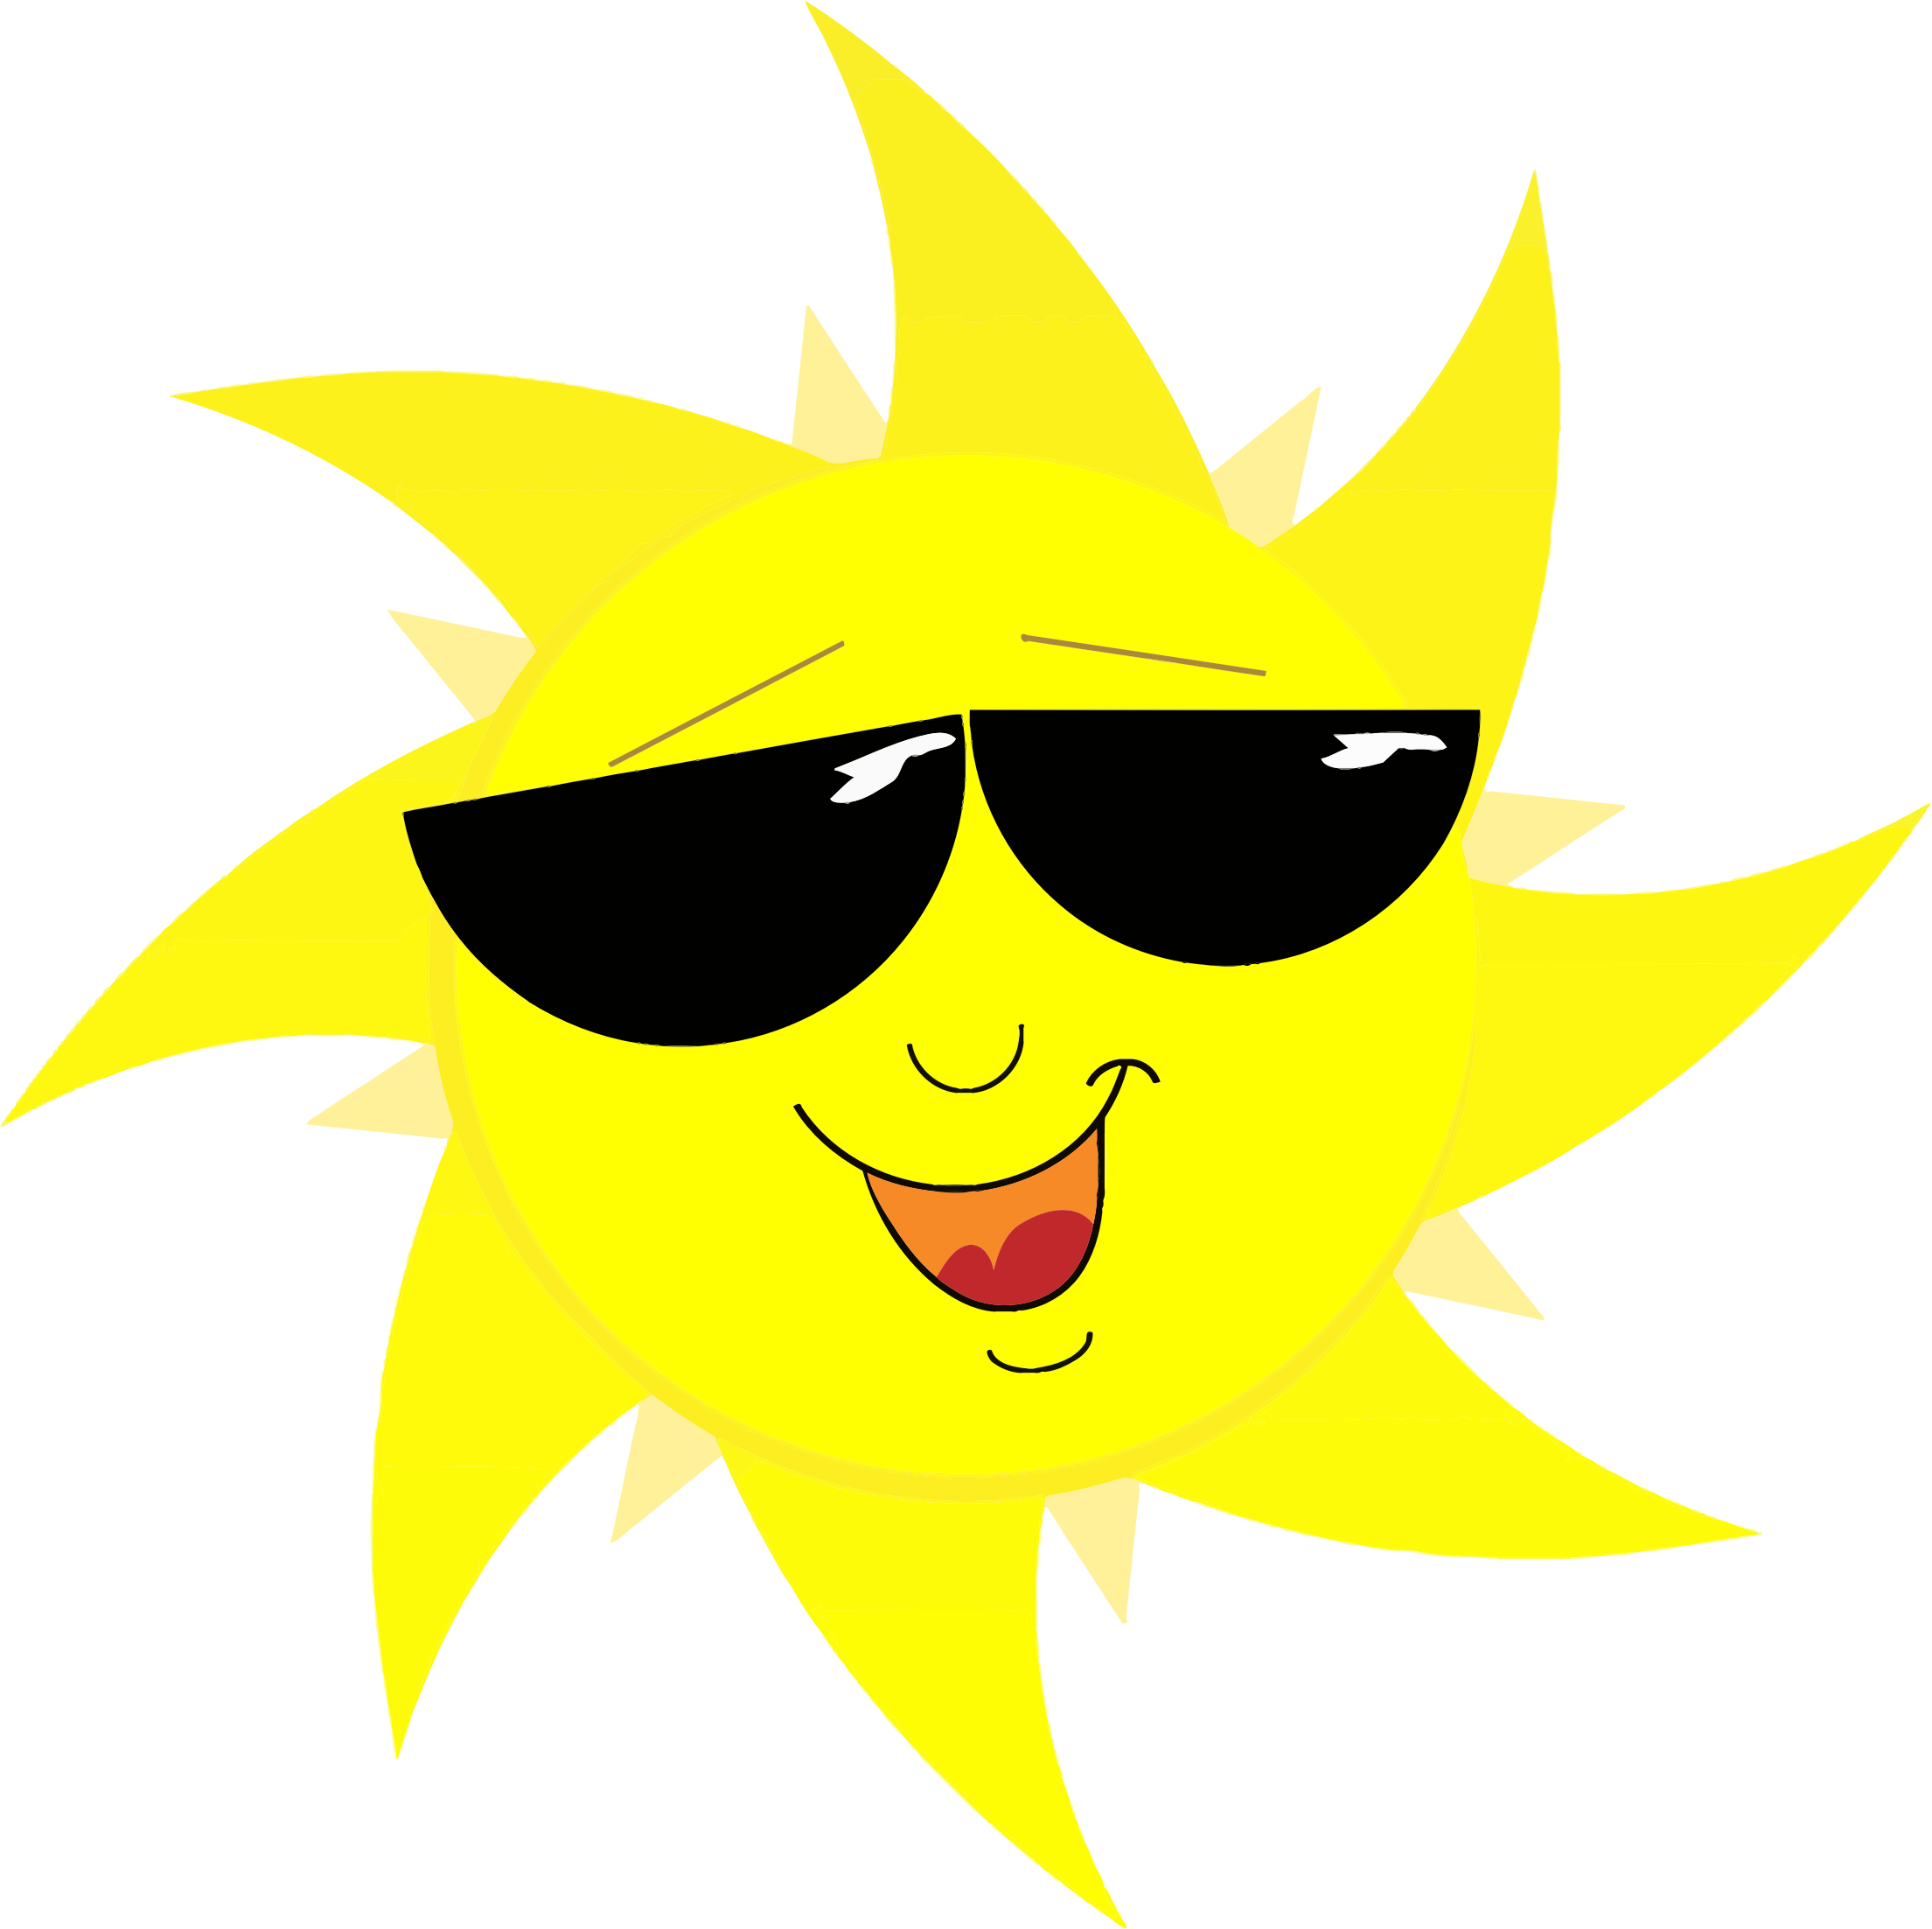 Clipart smiling sun banner library download Clipart - Smiling Sun With Sunglasses banner library download